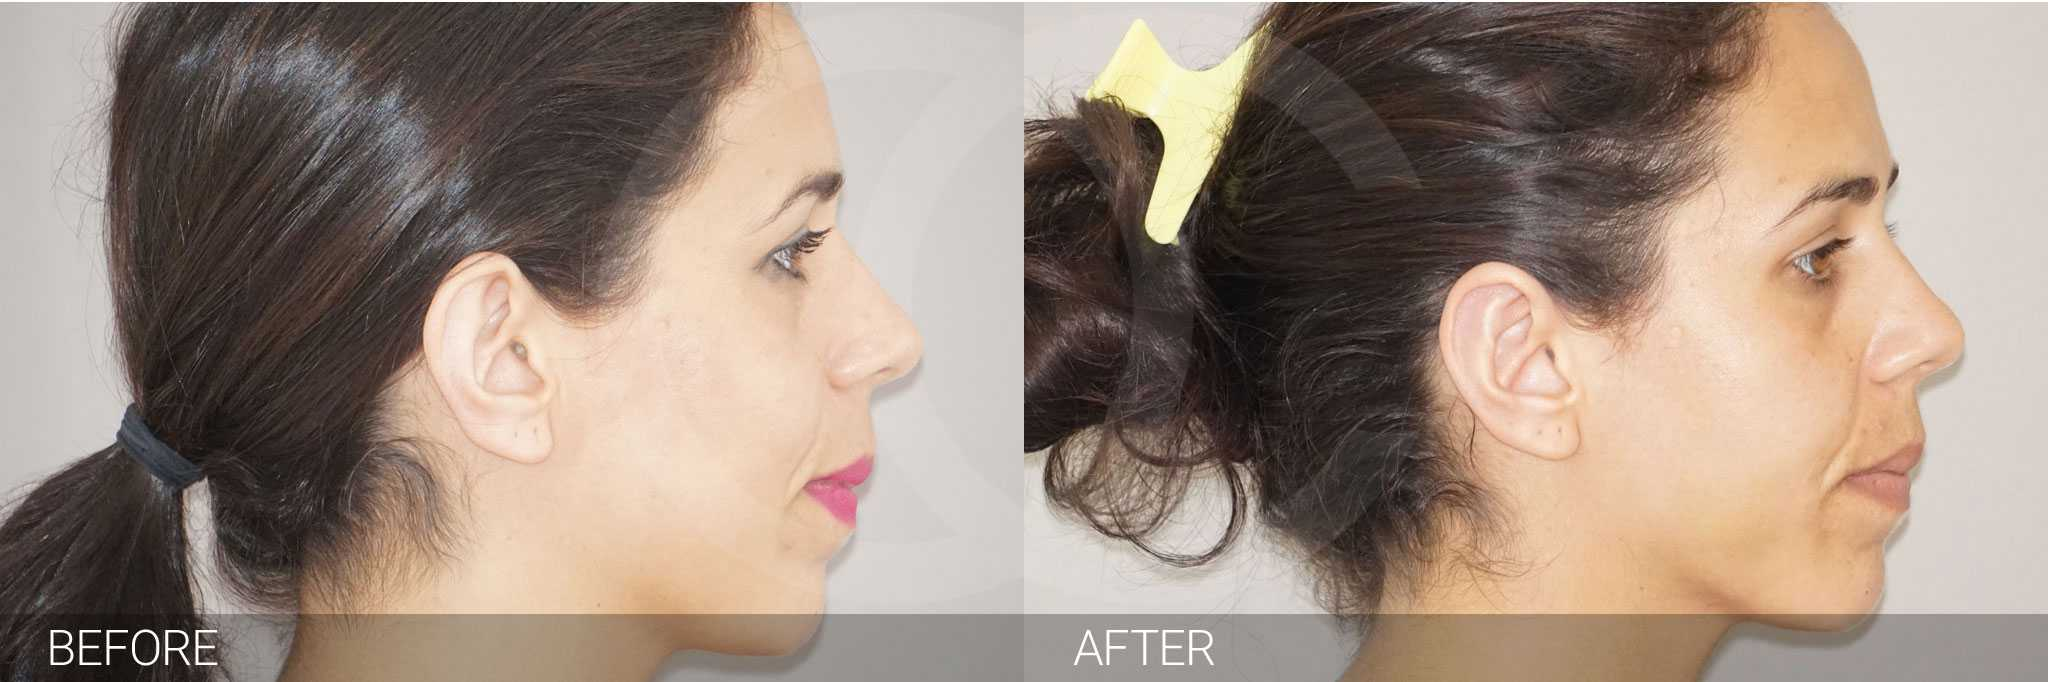 Ear Correction Ear Reshaping Antihelixplasty ante/post-op II